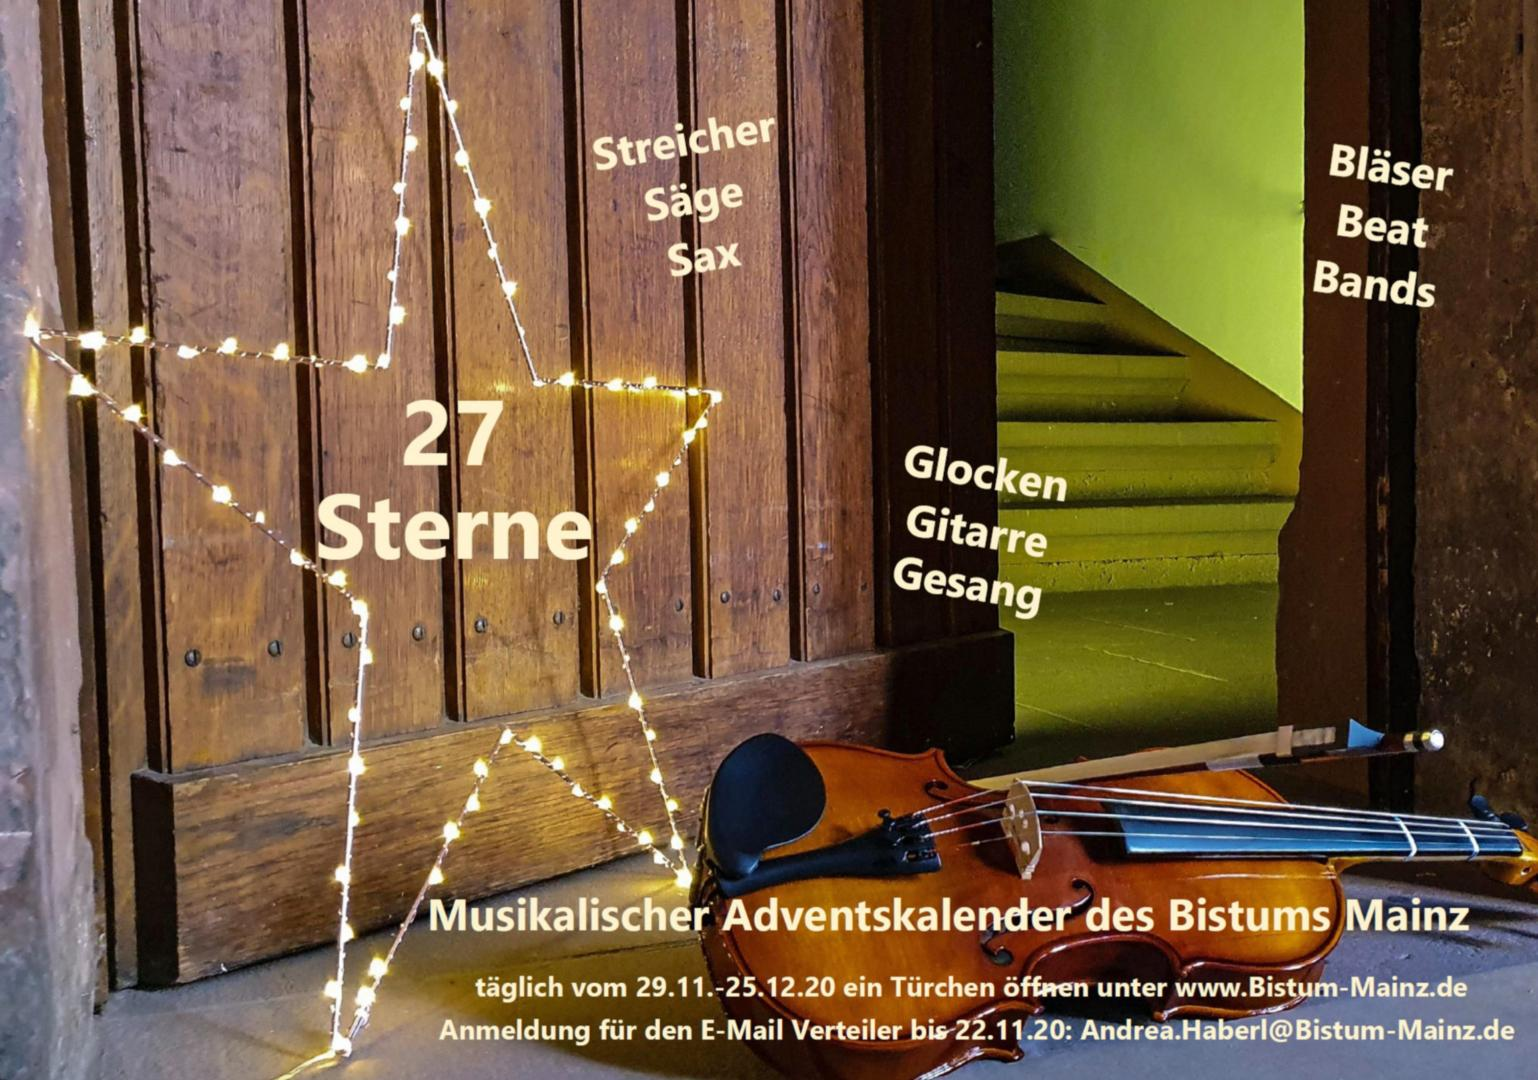 Musikalischer Adventskalender (c) Bistums Mainz